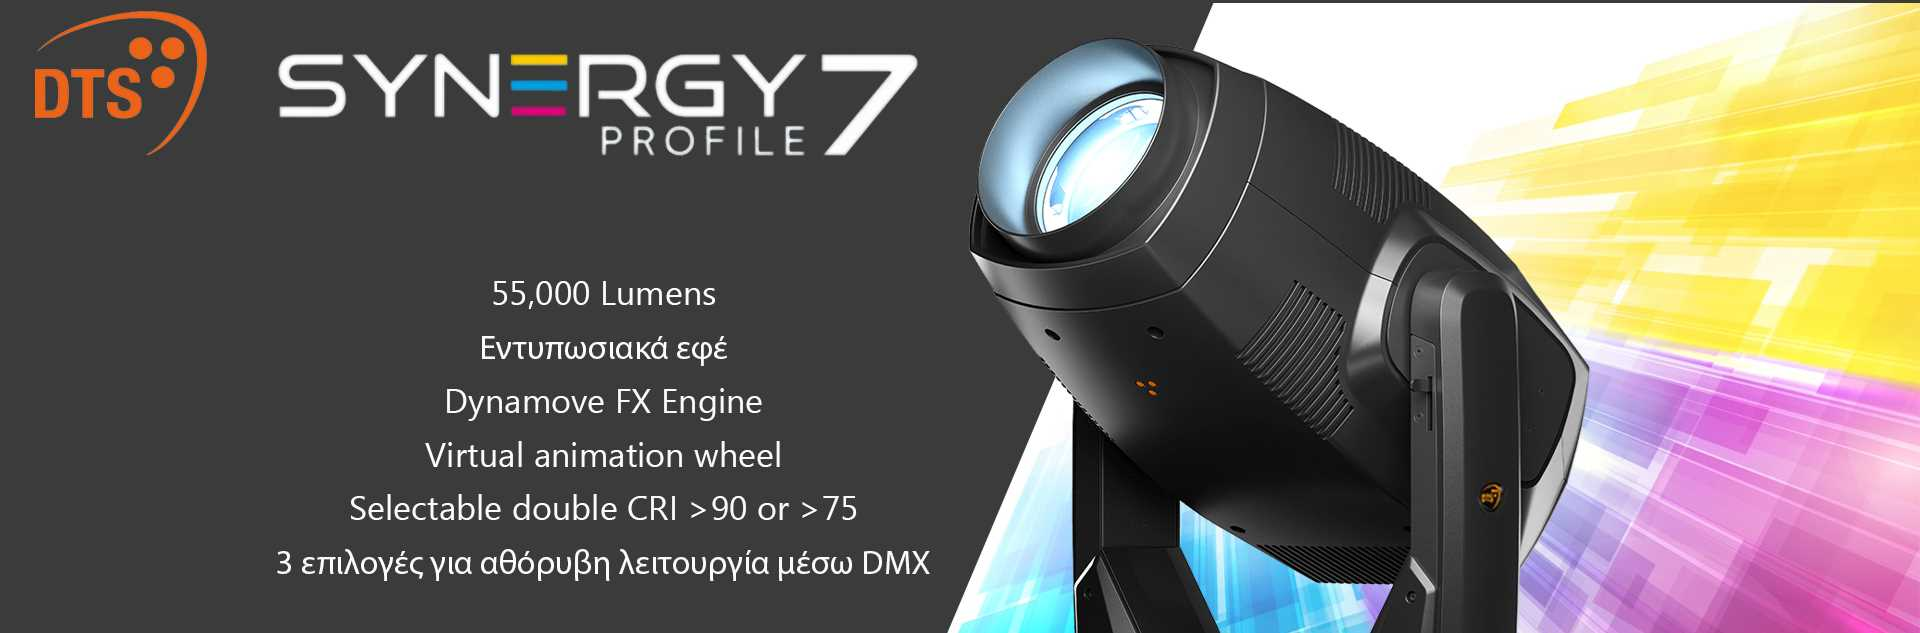 DTS Lighting Synergy 7 Profile